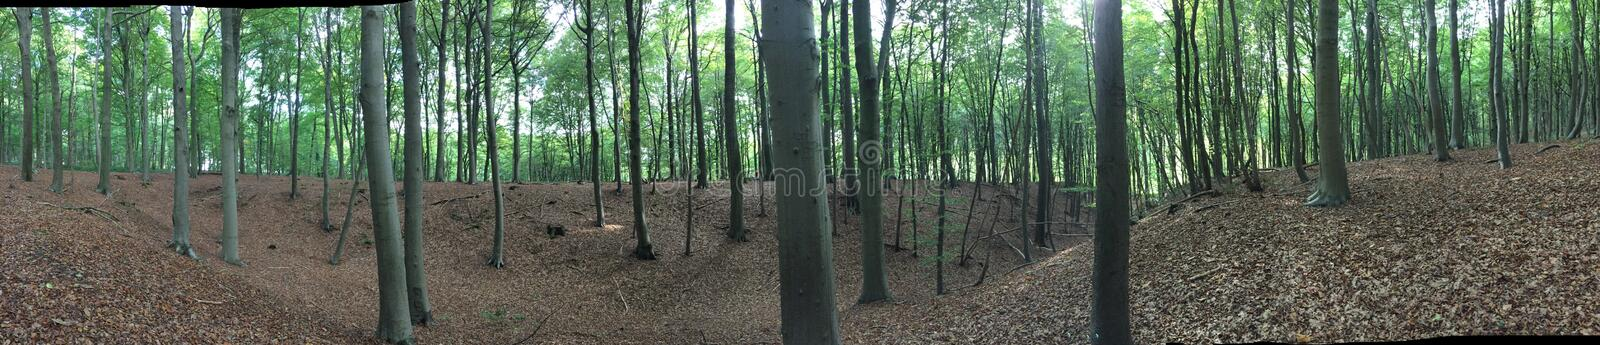 Forest overvieuw royalty free stock photography